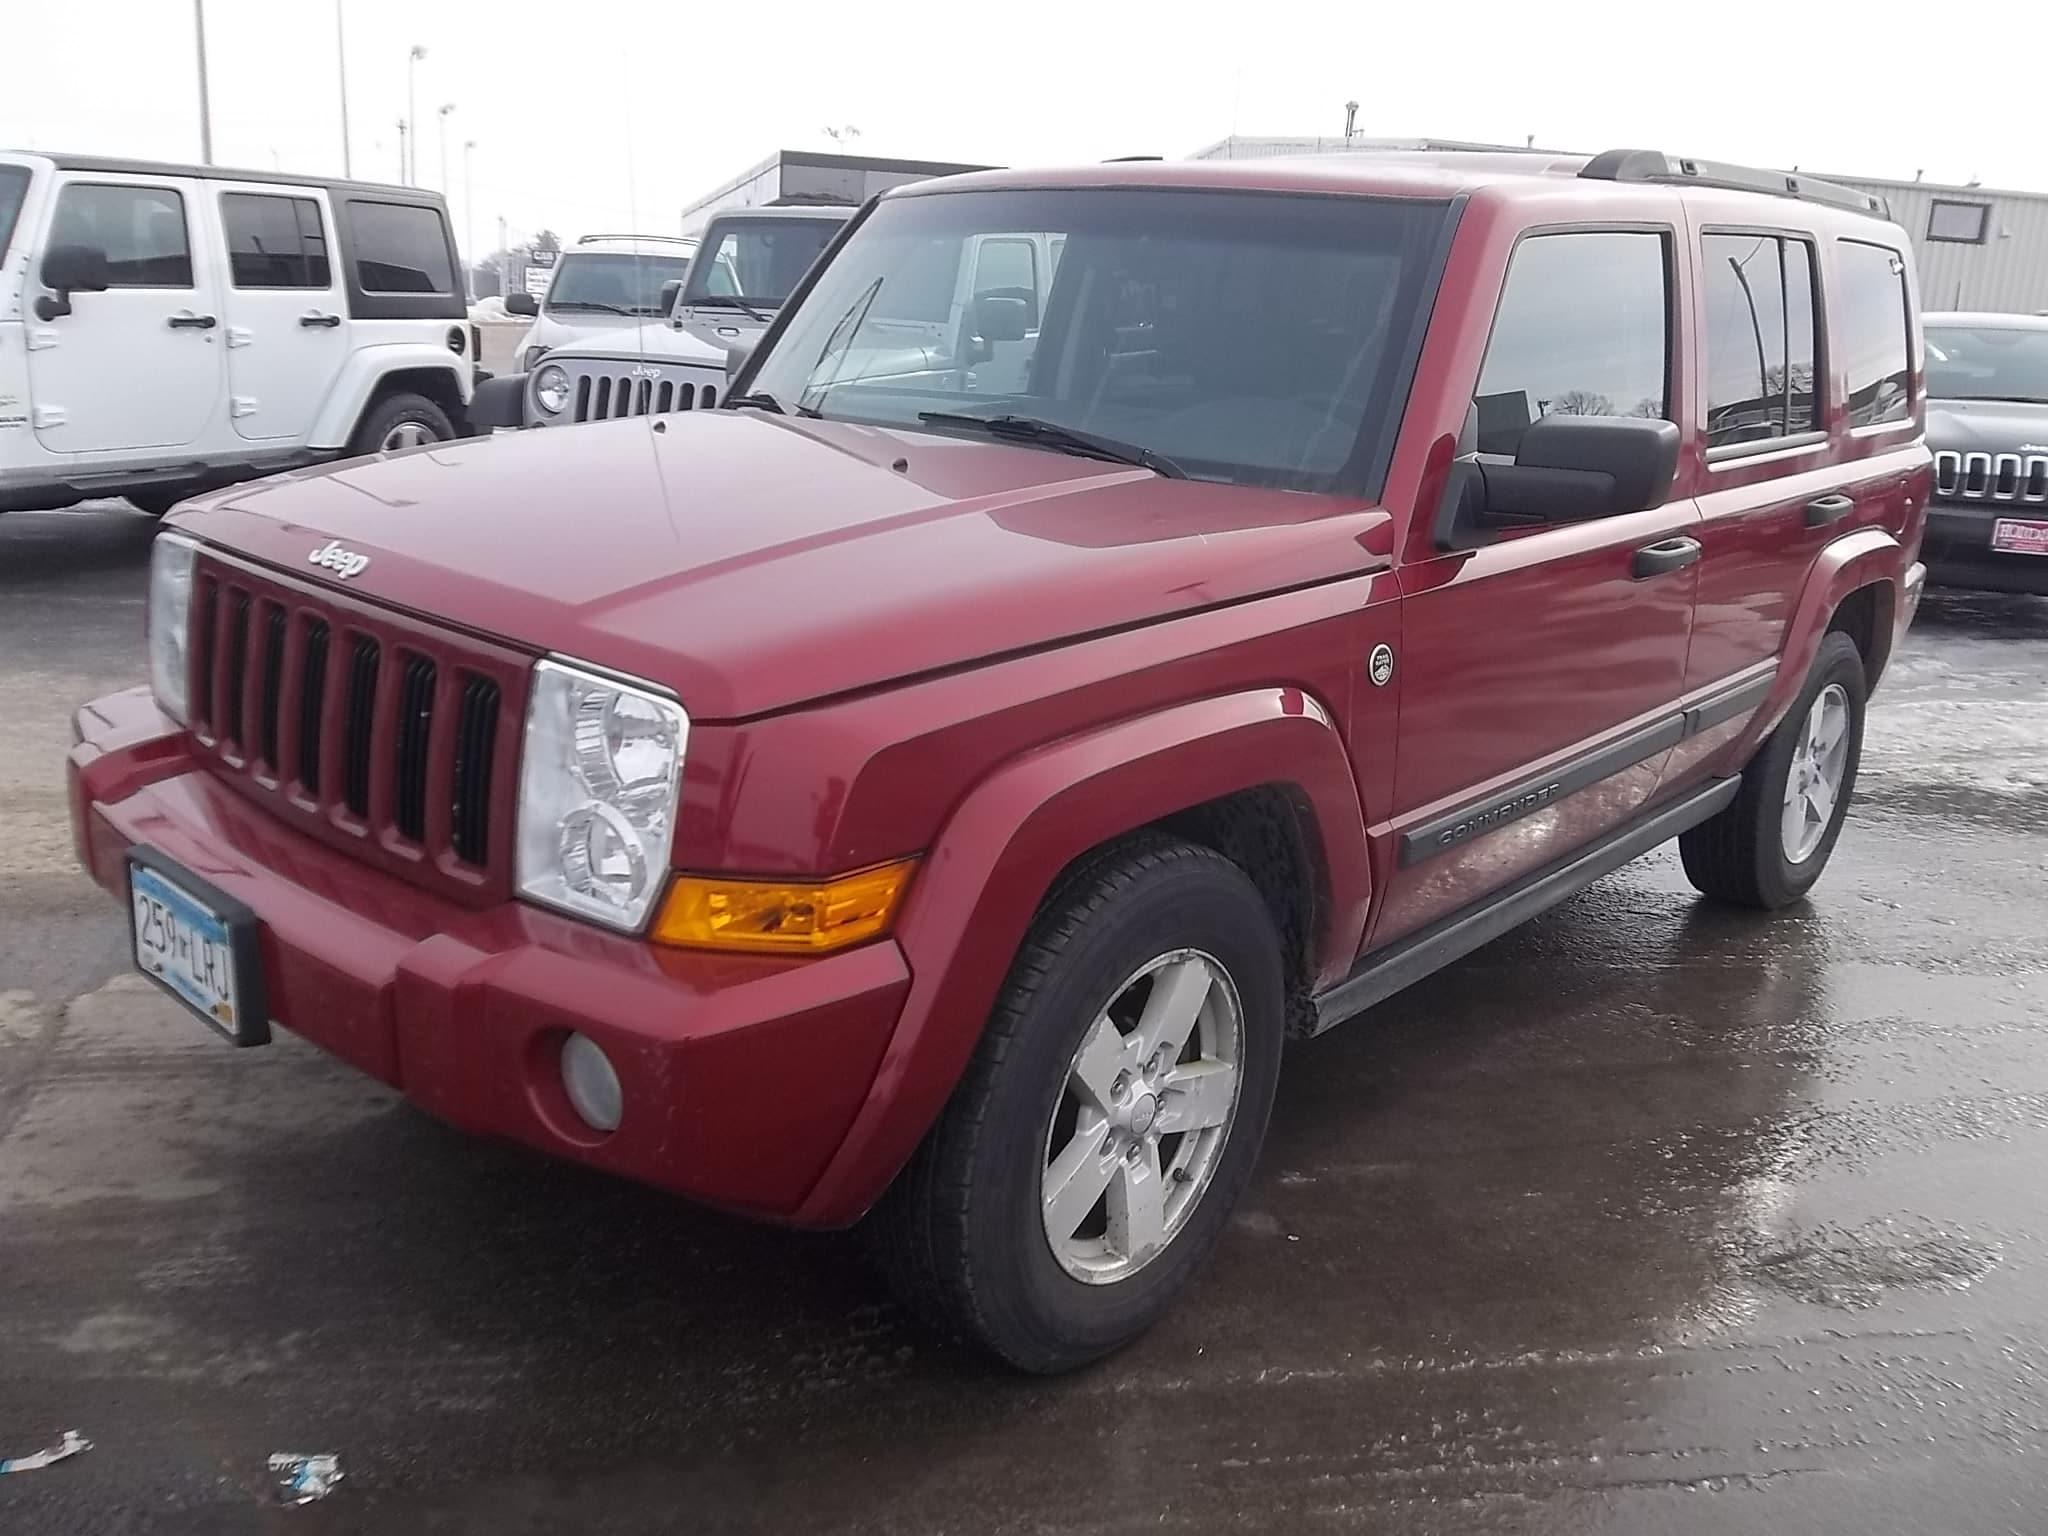 used 2006 jeep commander for sale austin mn vin 1j8hg48n96c228665. Black Bedroom Furniture Sets. Home Design Ideas